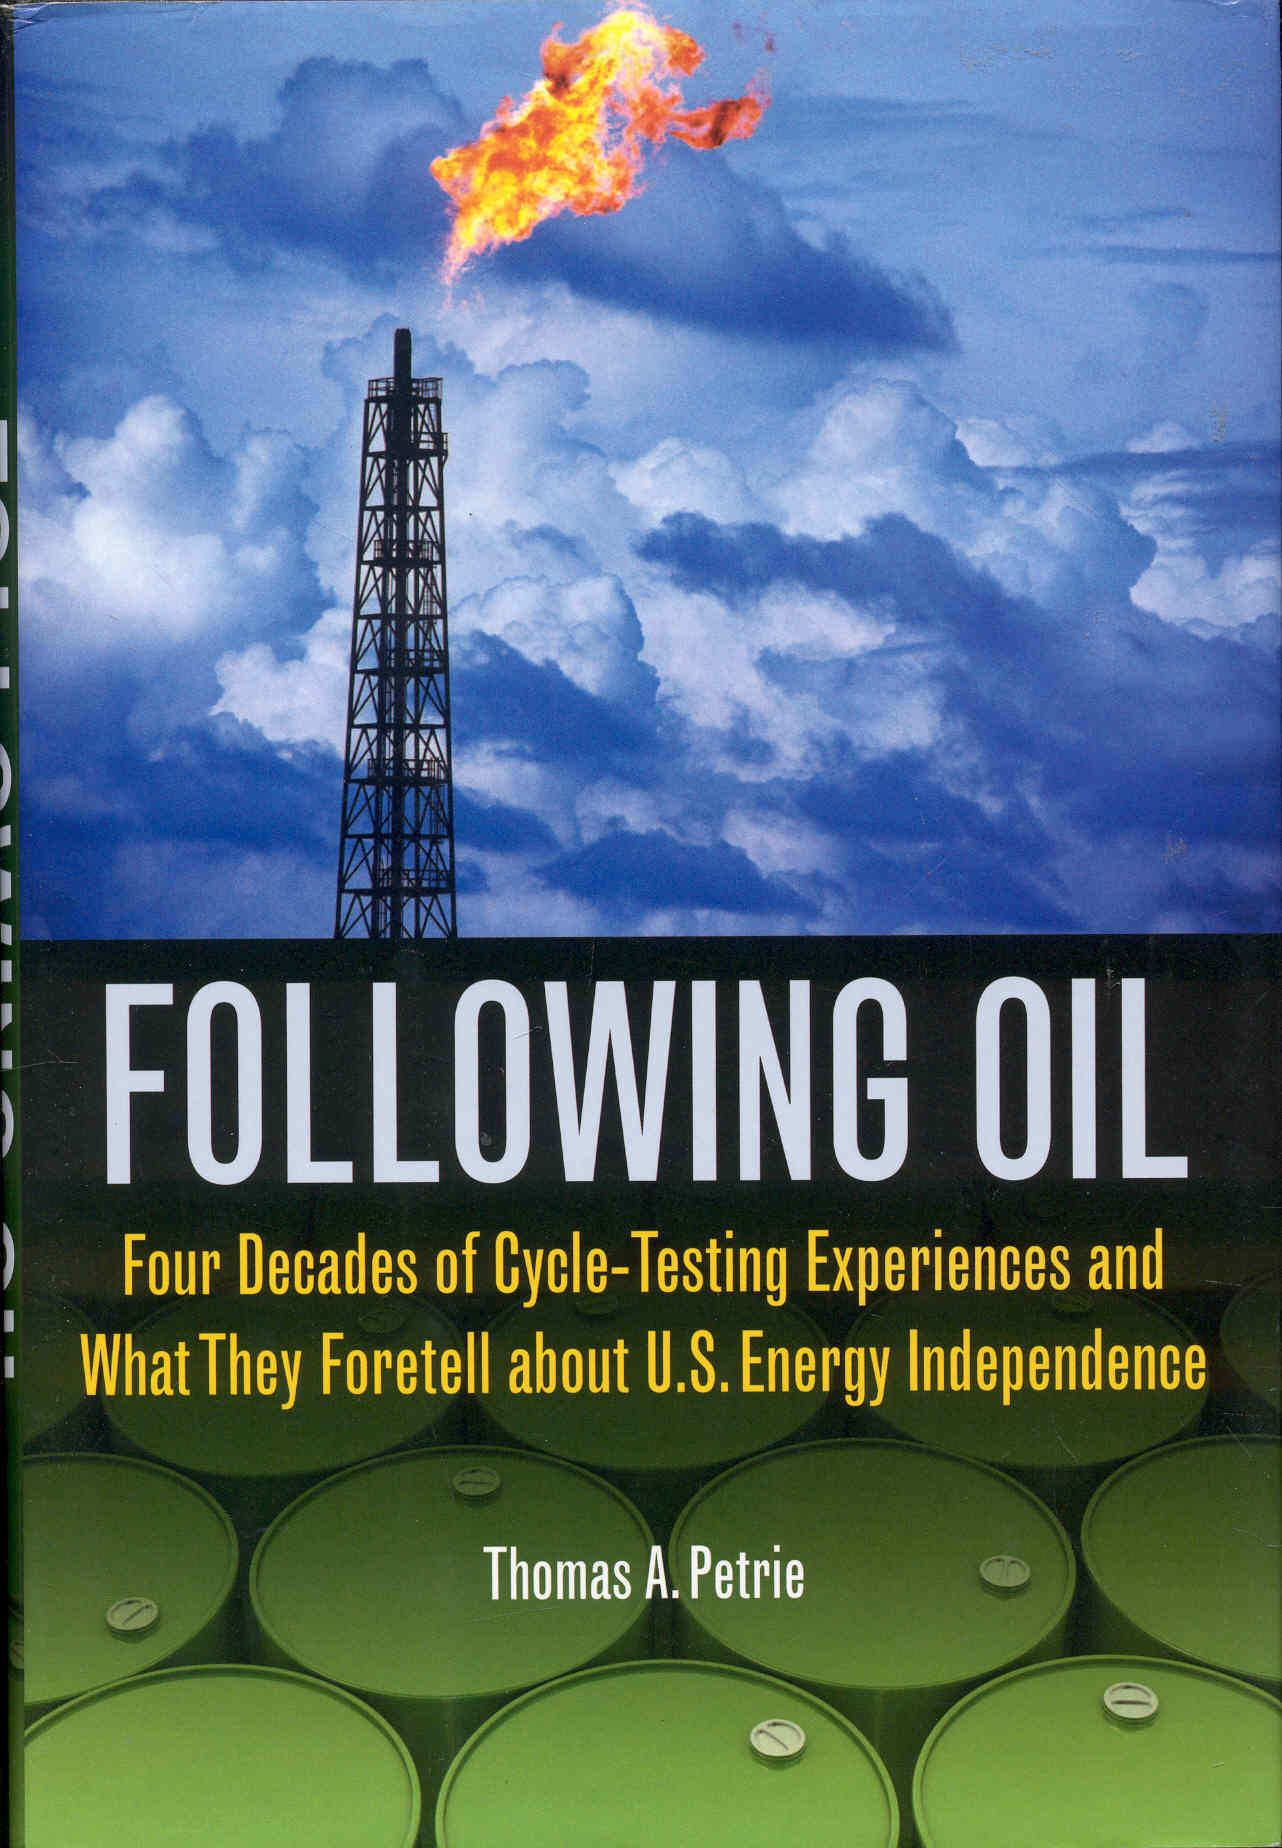 Image for Following Oil: Four Decades of Cycle-Testing Experiences and What They Foretell about U.S. Energy Independence